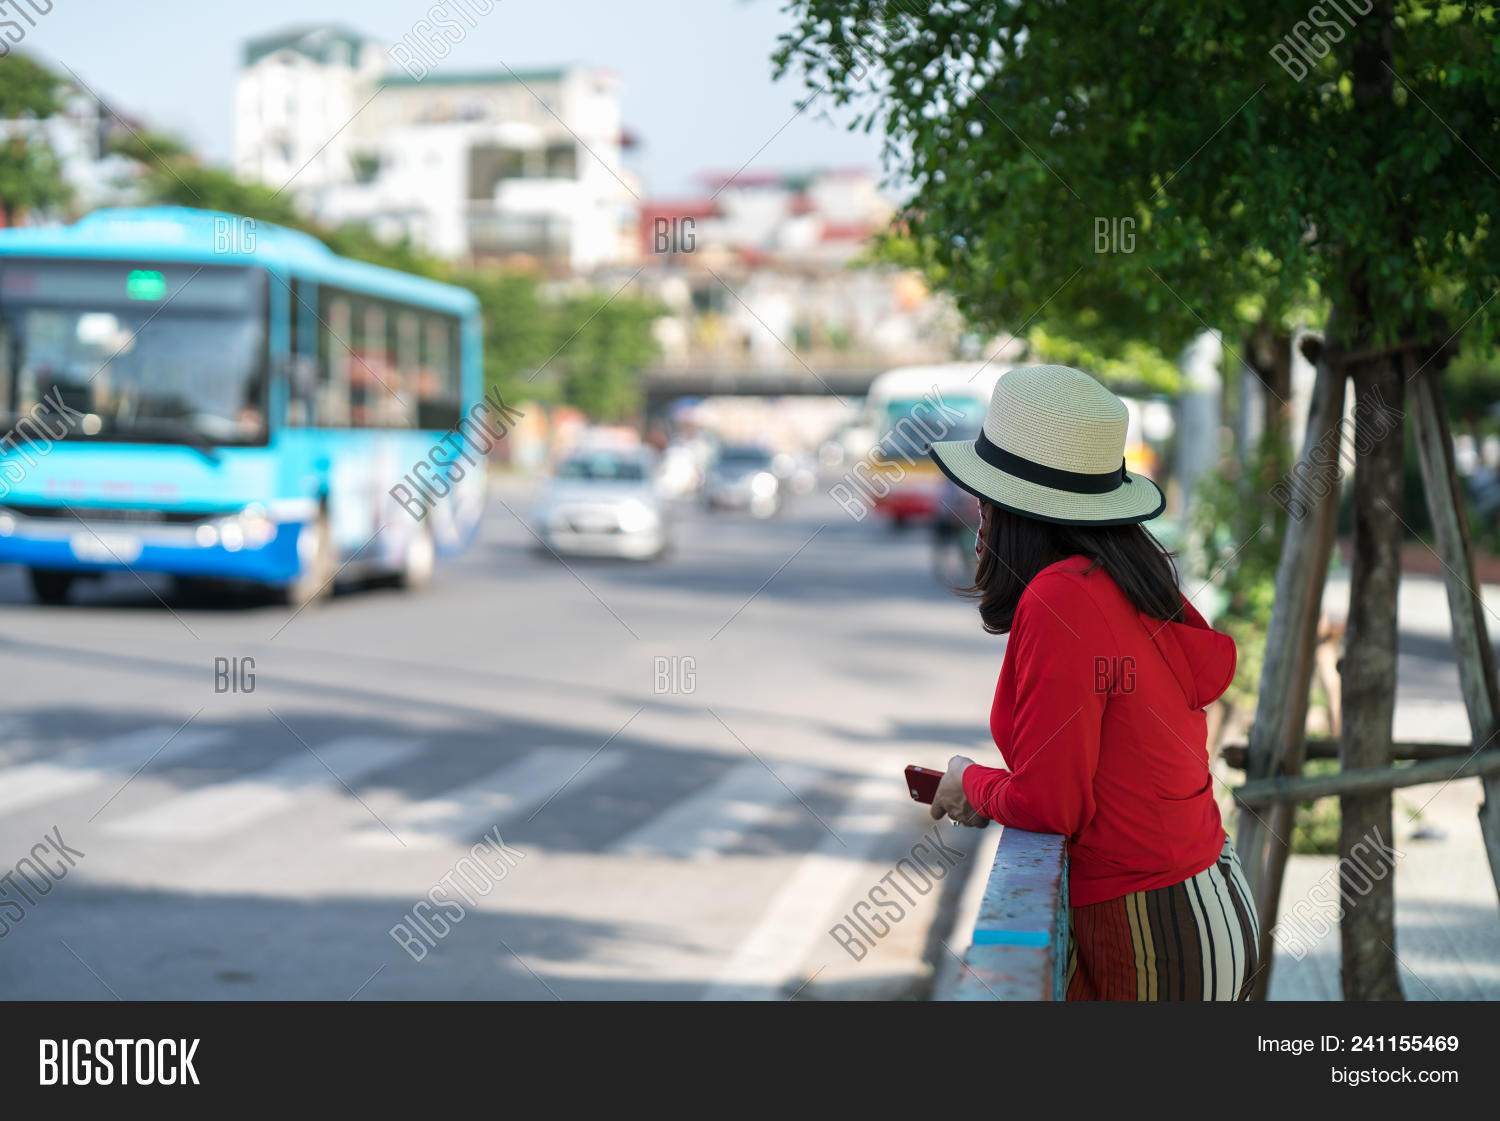 Young Girl Waiting Bus Image Amp Photo Free Trial